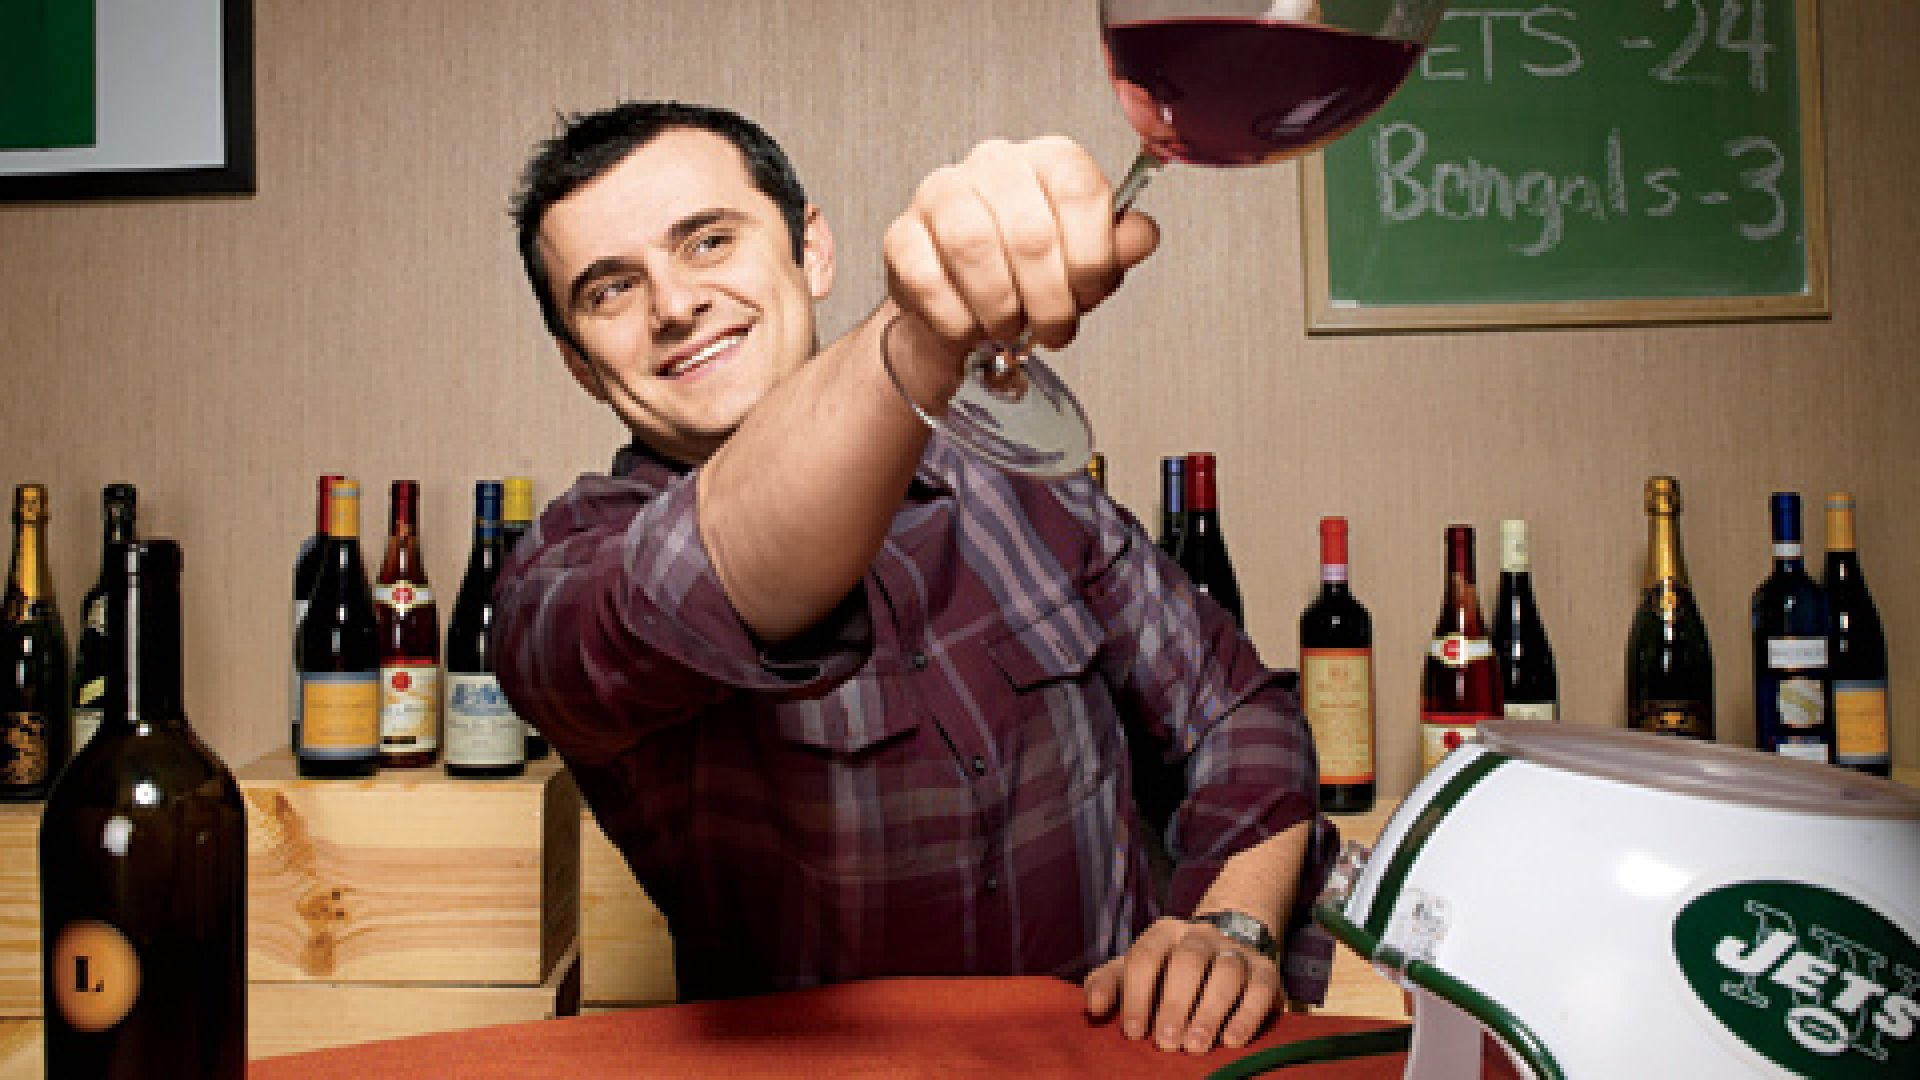 <strong>Internet Celebrity: </strong>Gary Vaynerchuk's video blogs, on which he tastes and reviews wine, get some 90,000 views a day. The New York Jets helmet serves as his spittoon.